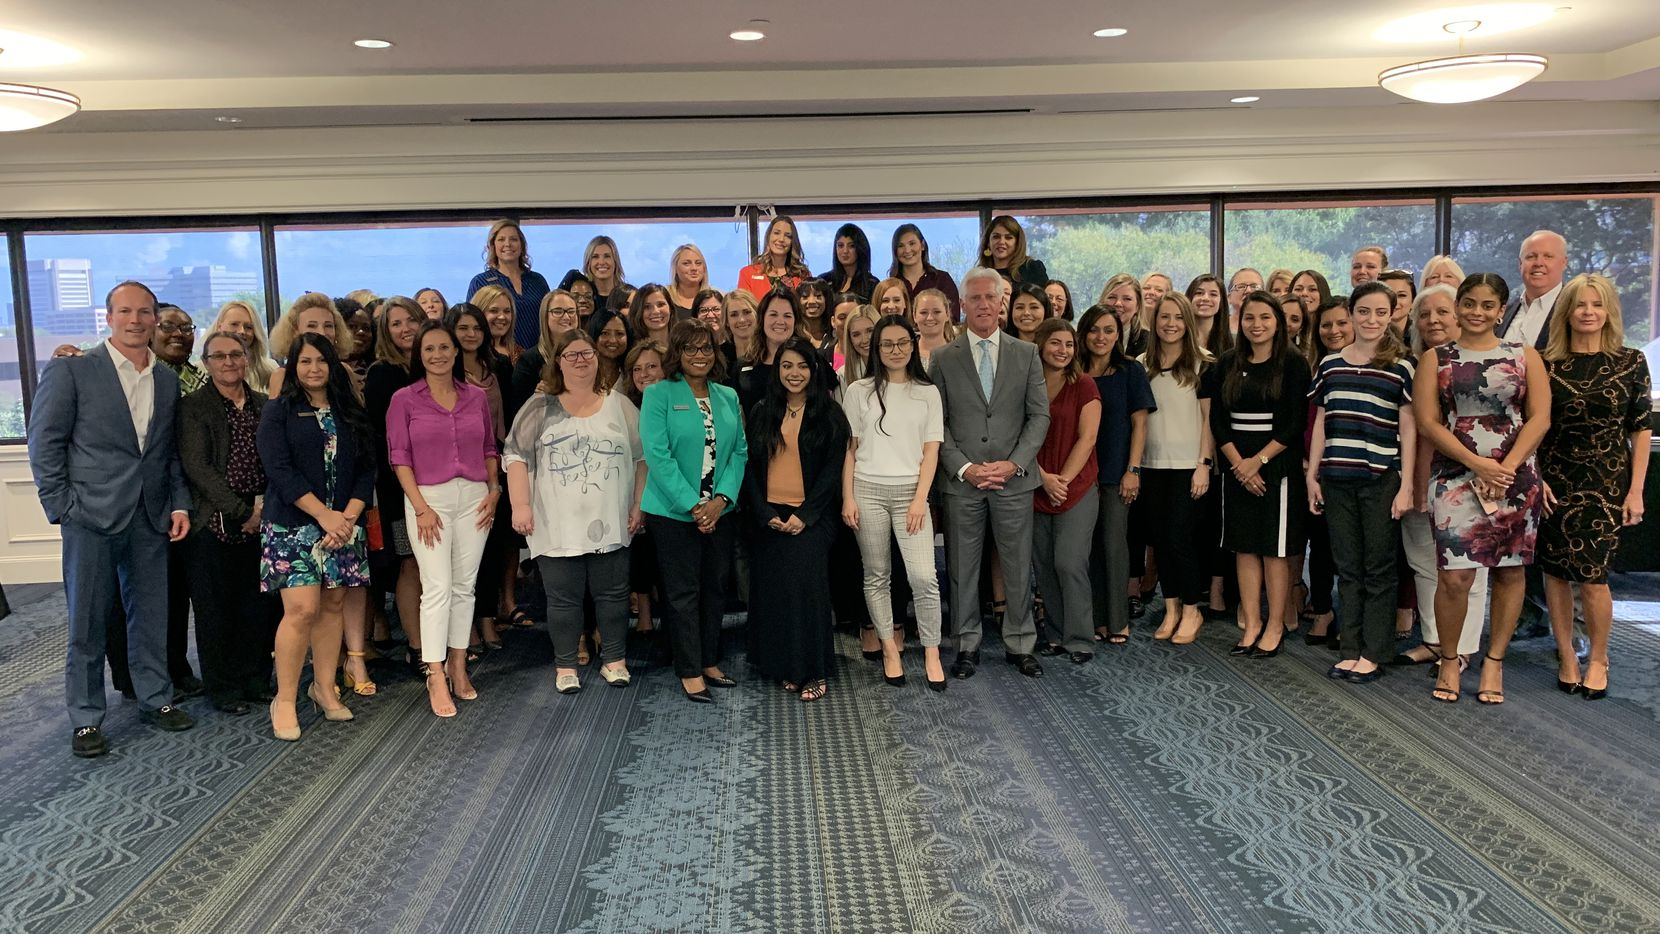 Park Place Dealerships Women in Automotive Council met September 18 to share professional experiences and plan external events encouraging women to pursue careers in the automotive industry. The day's theme was A Seat at the Table.